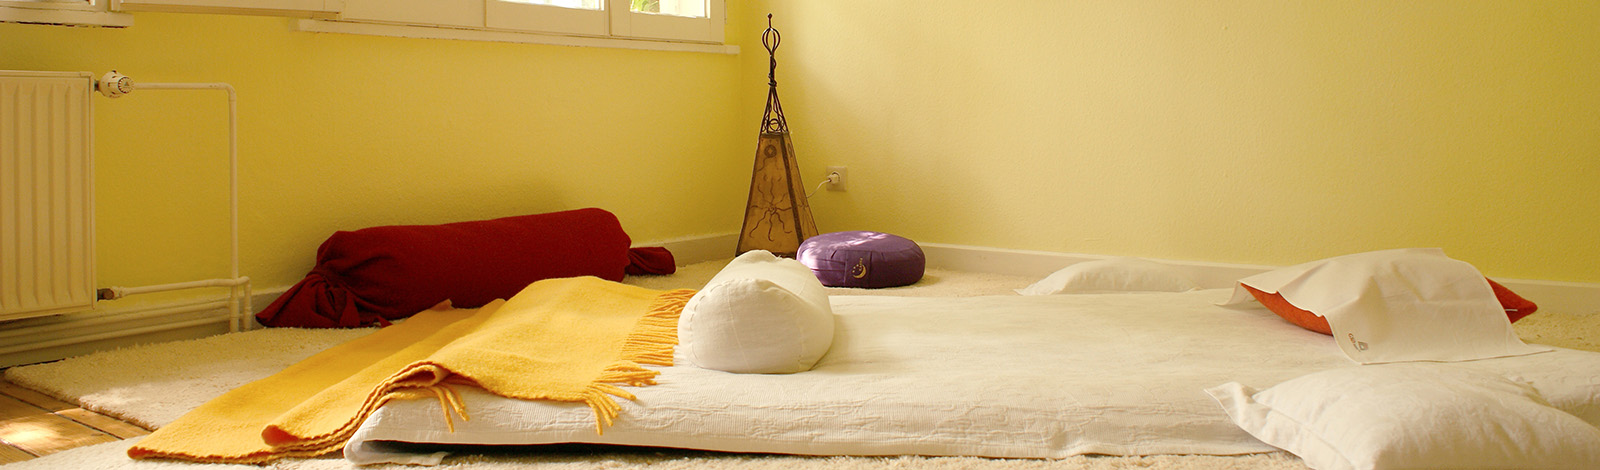 Shiatsu-Münster-Massage-Meditation Raum